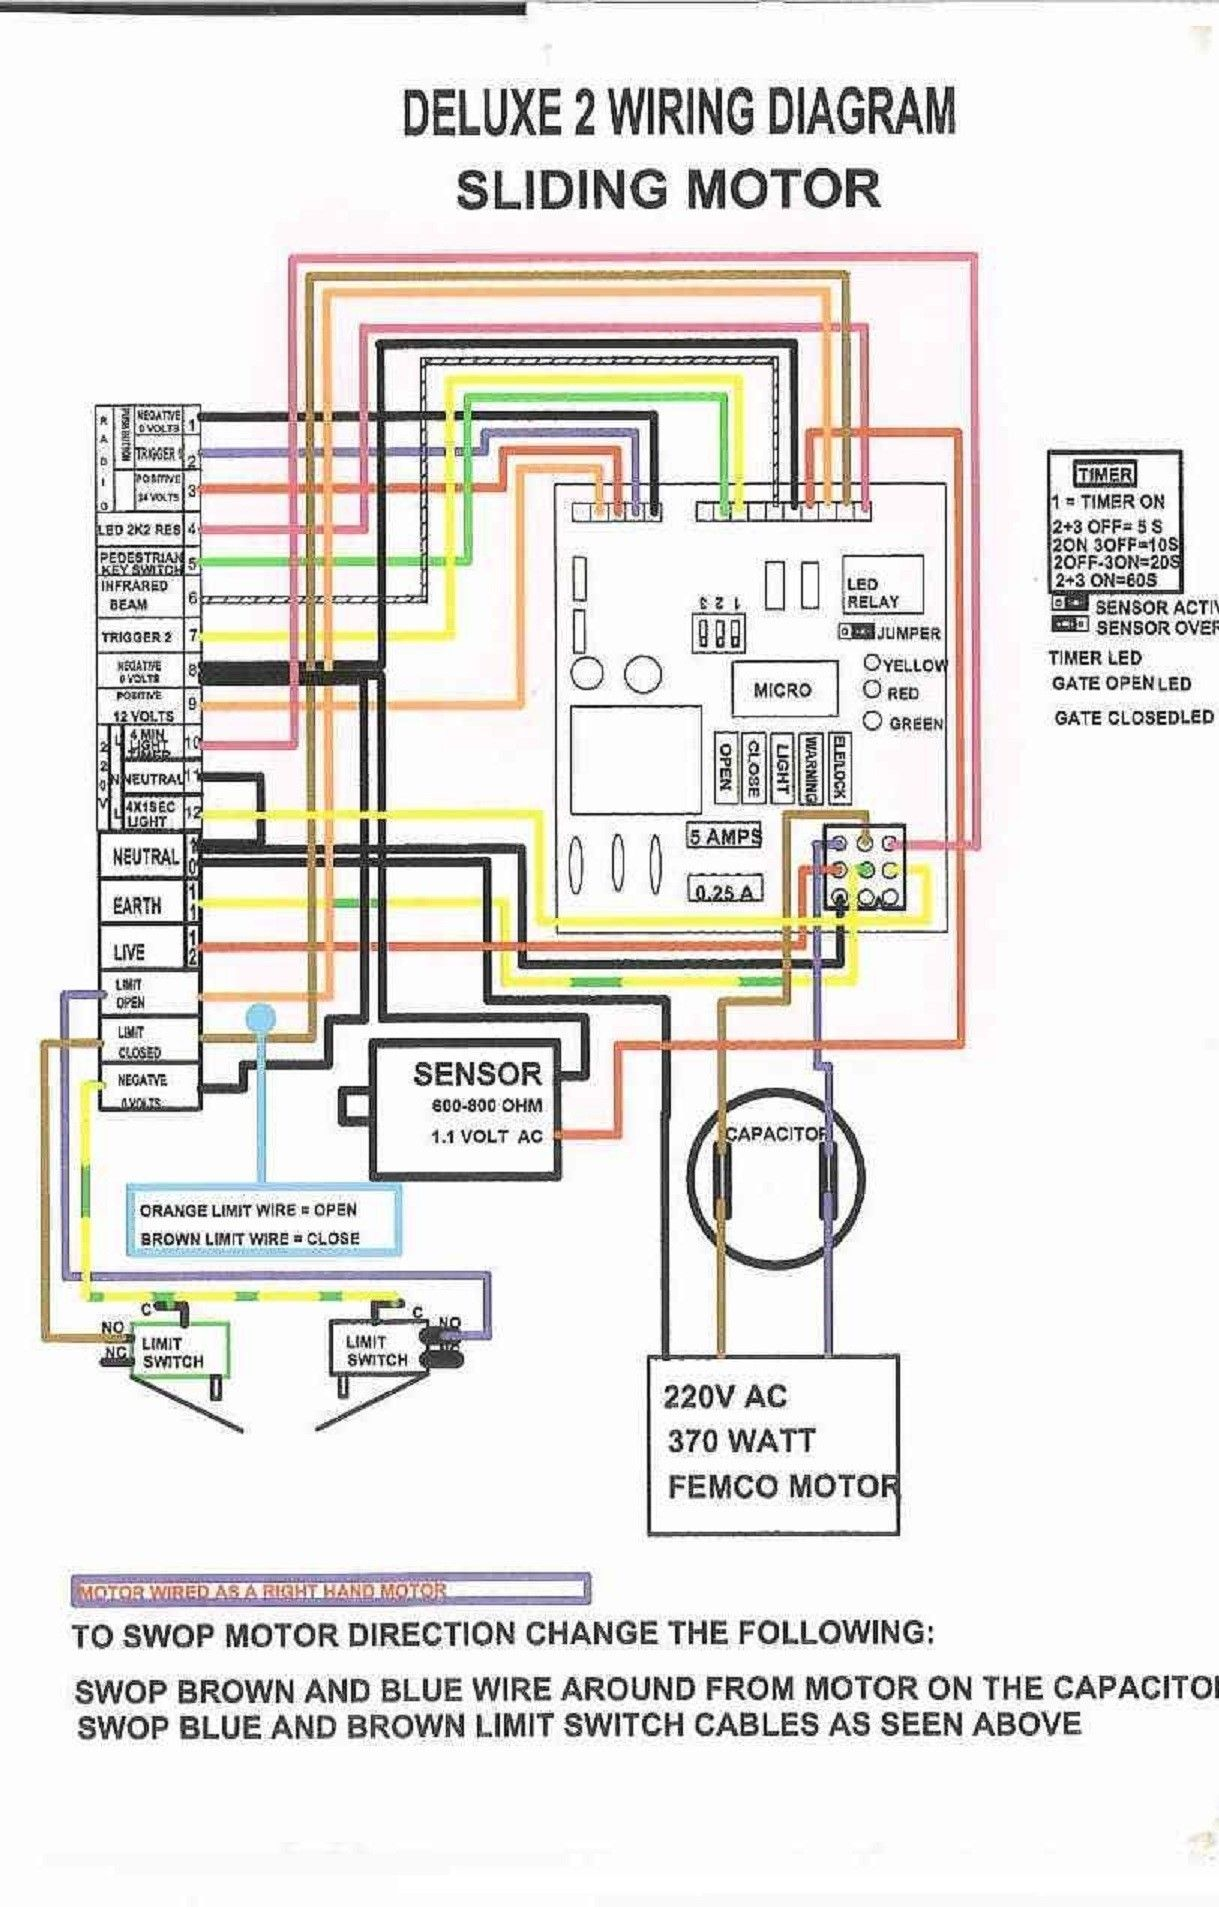 Unique Wiring Diagram Electric Gates Diagram Diagramsample Diagramtemplate Wiringdiagram Diagra Motorcycle Wiring Electrical Wiring Diagram Electric Gates